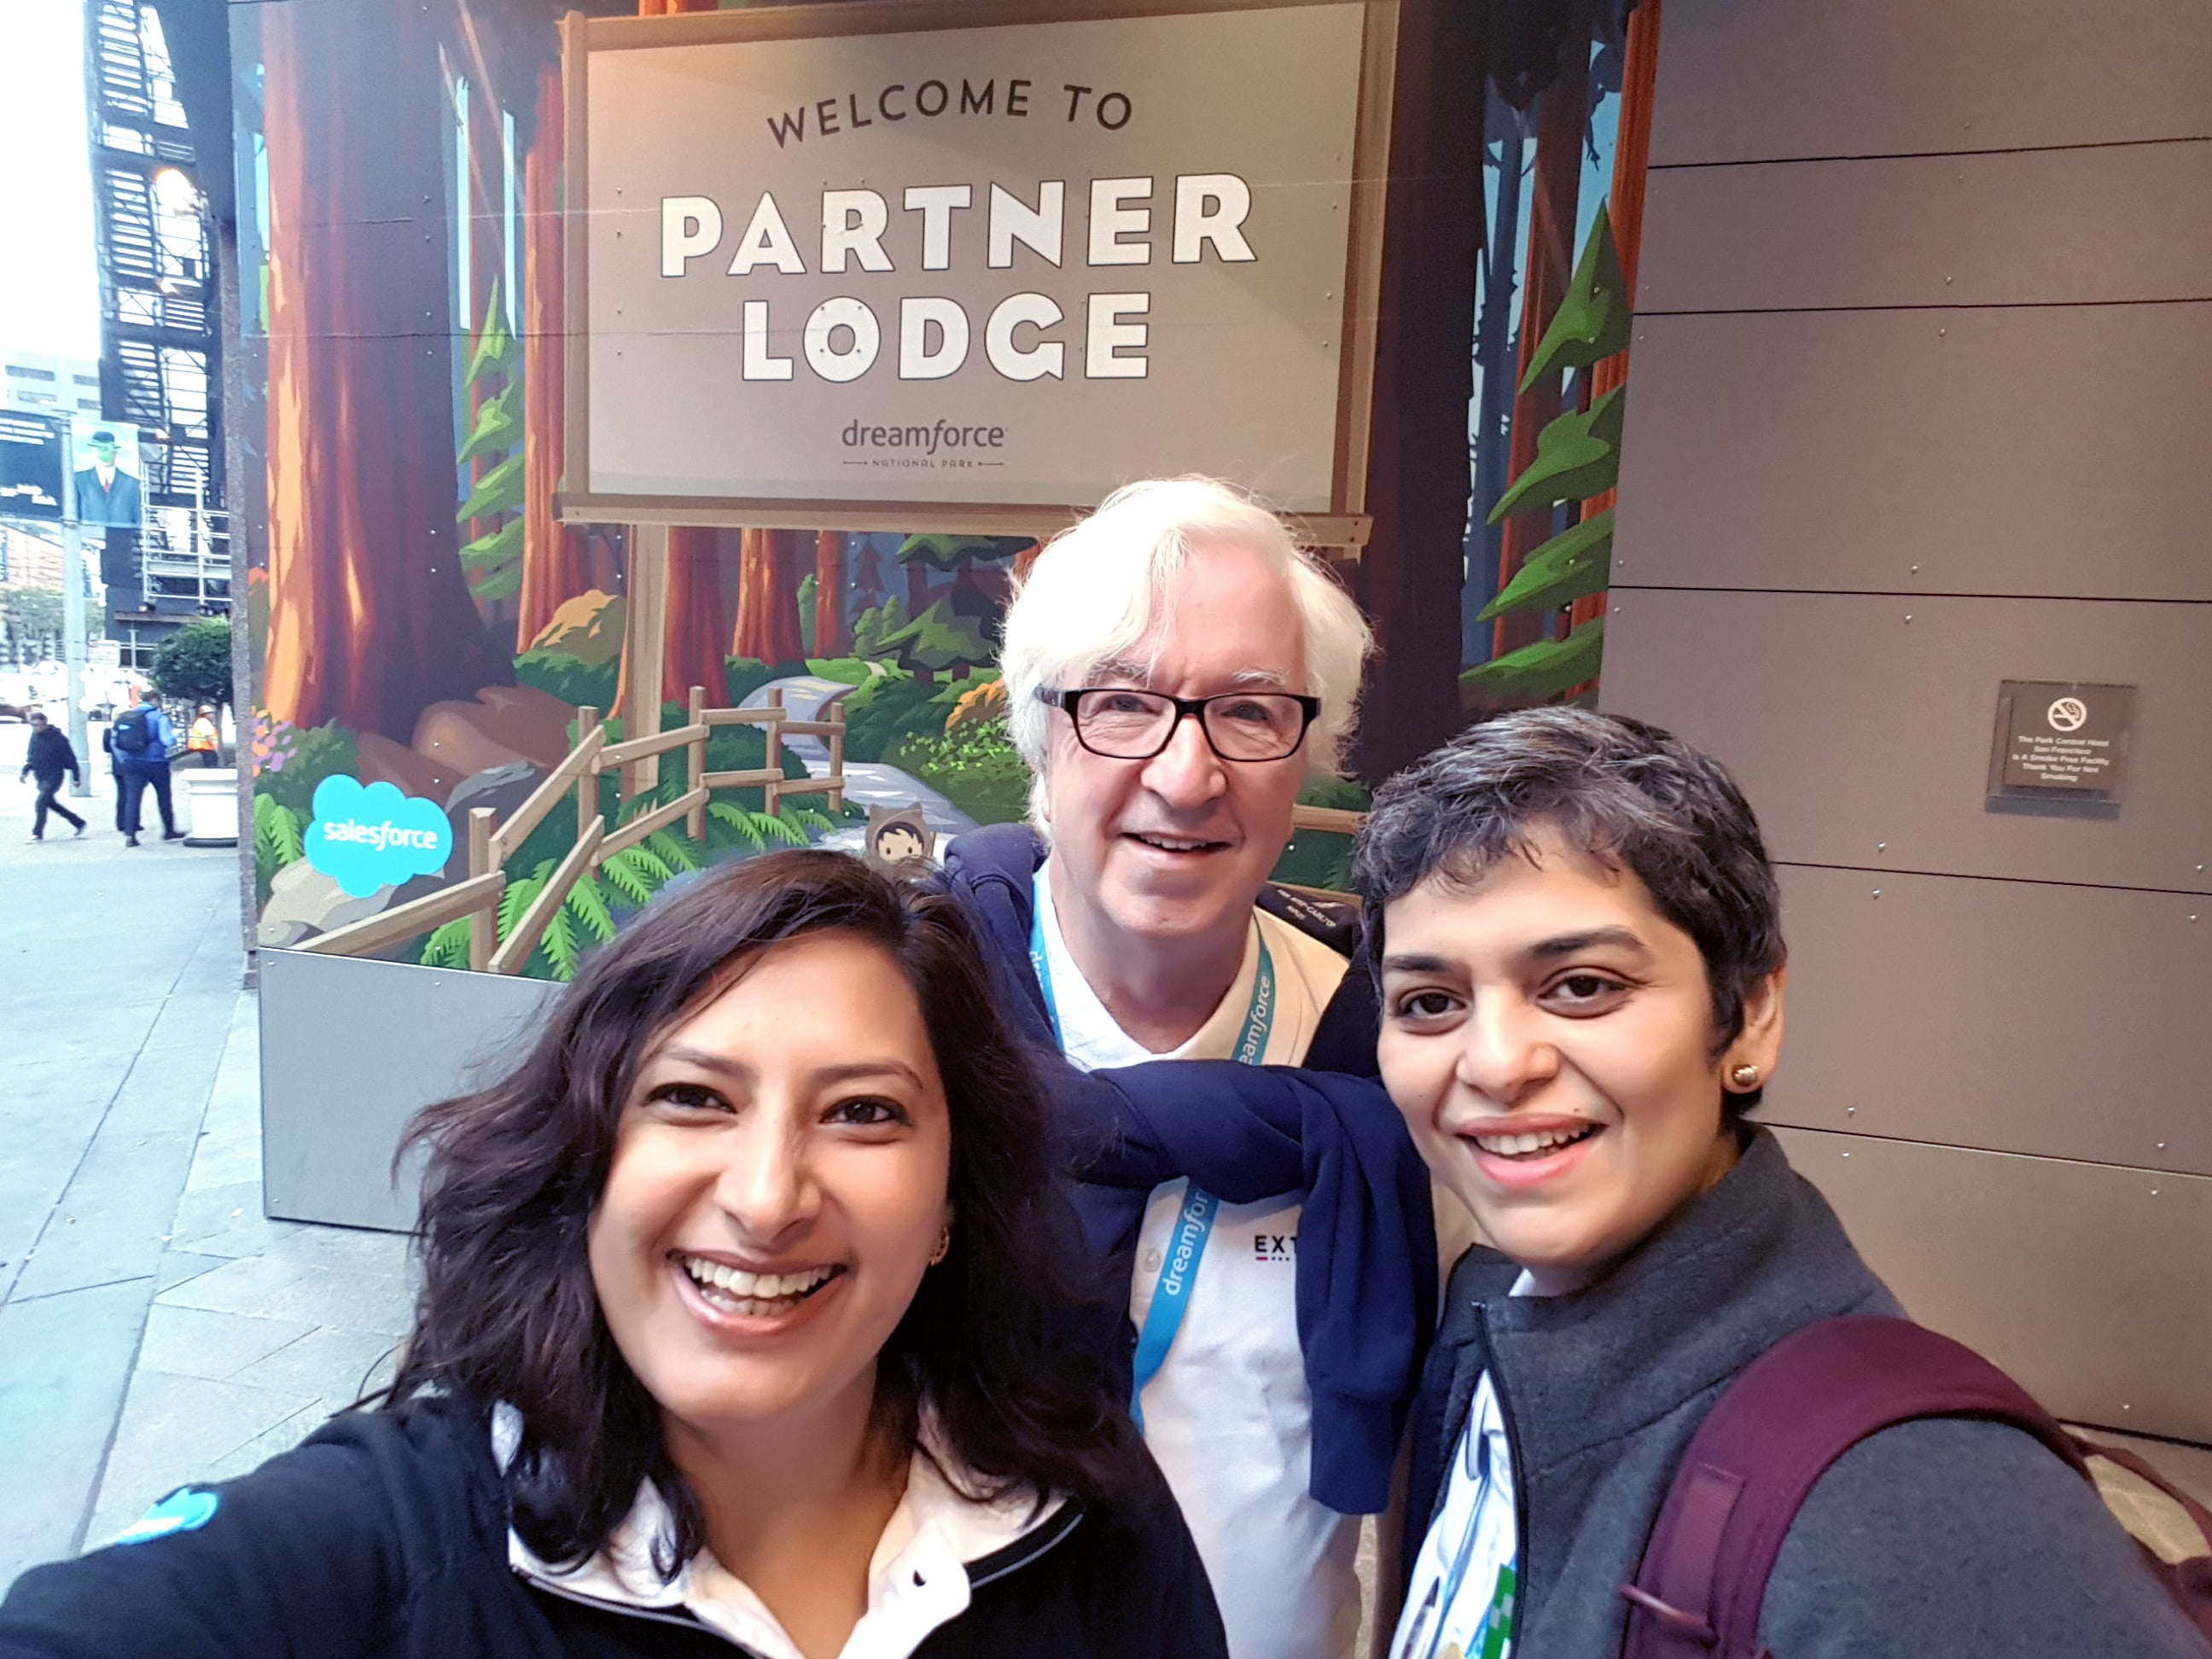 Partner-Lodge-Dreamforce-2018